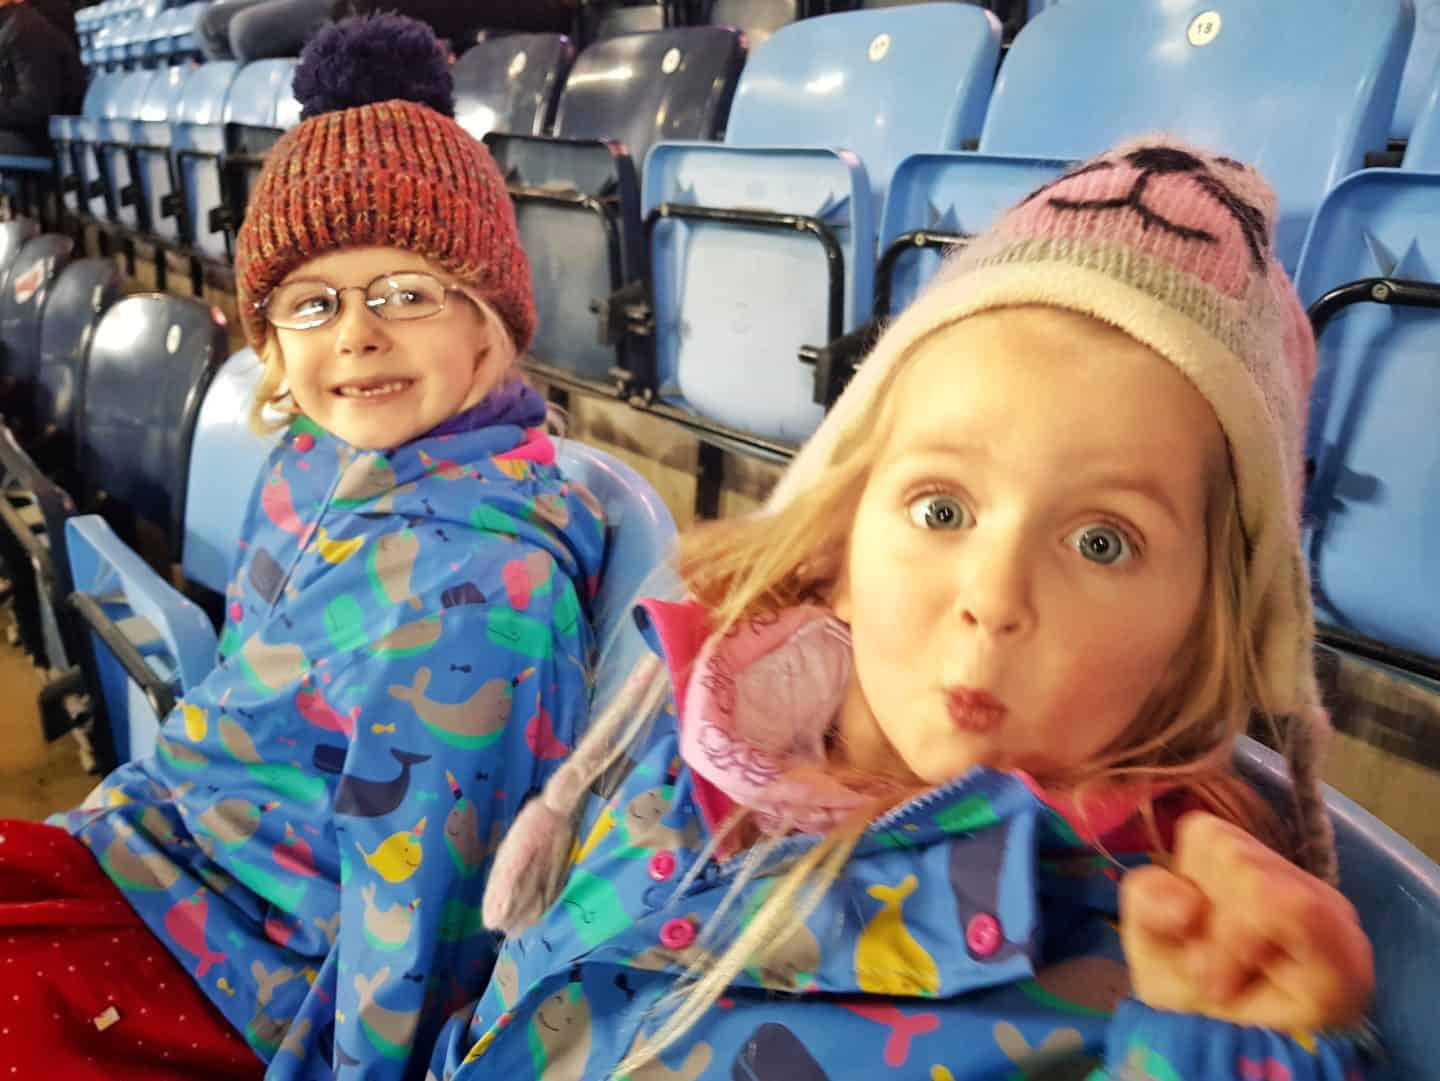 A family day out at the rugby watching Wasps at Ricoh Arena